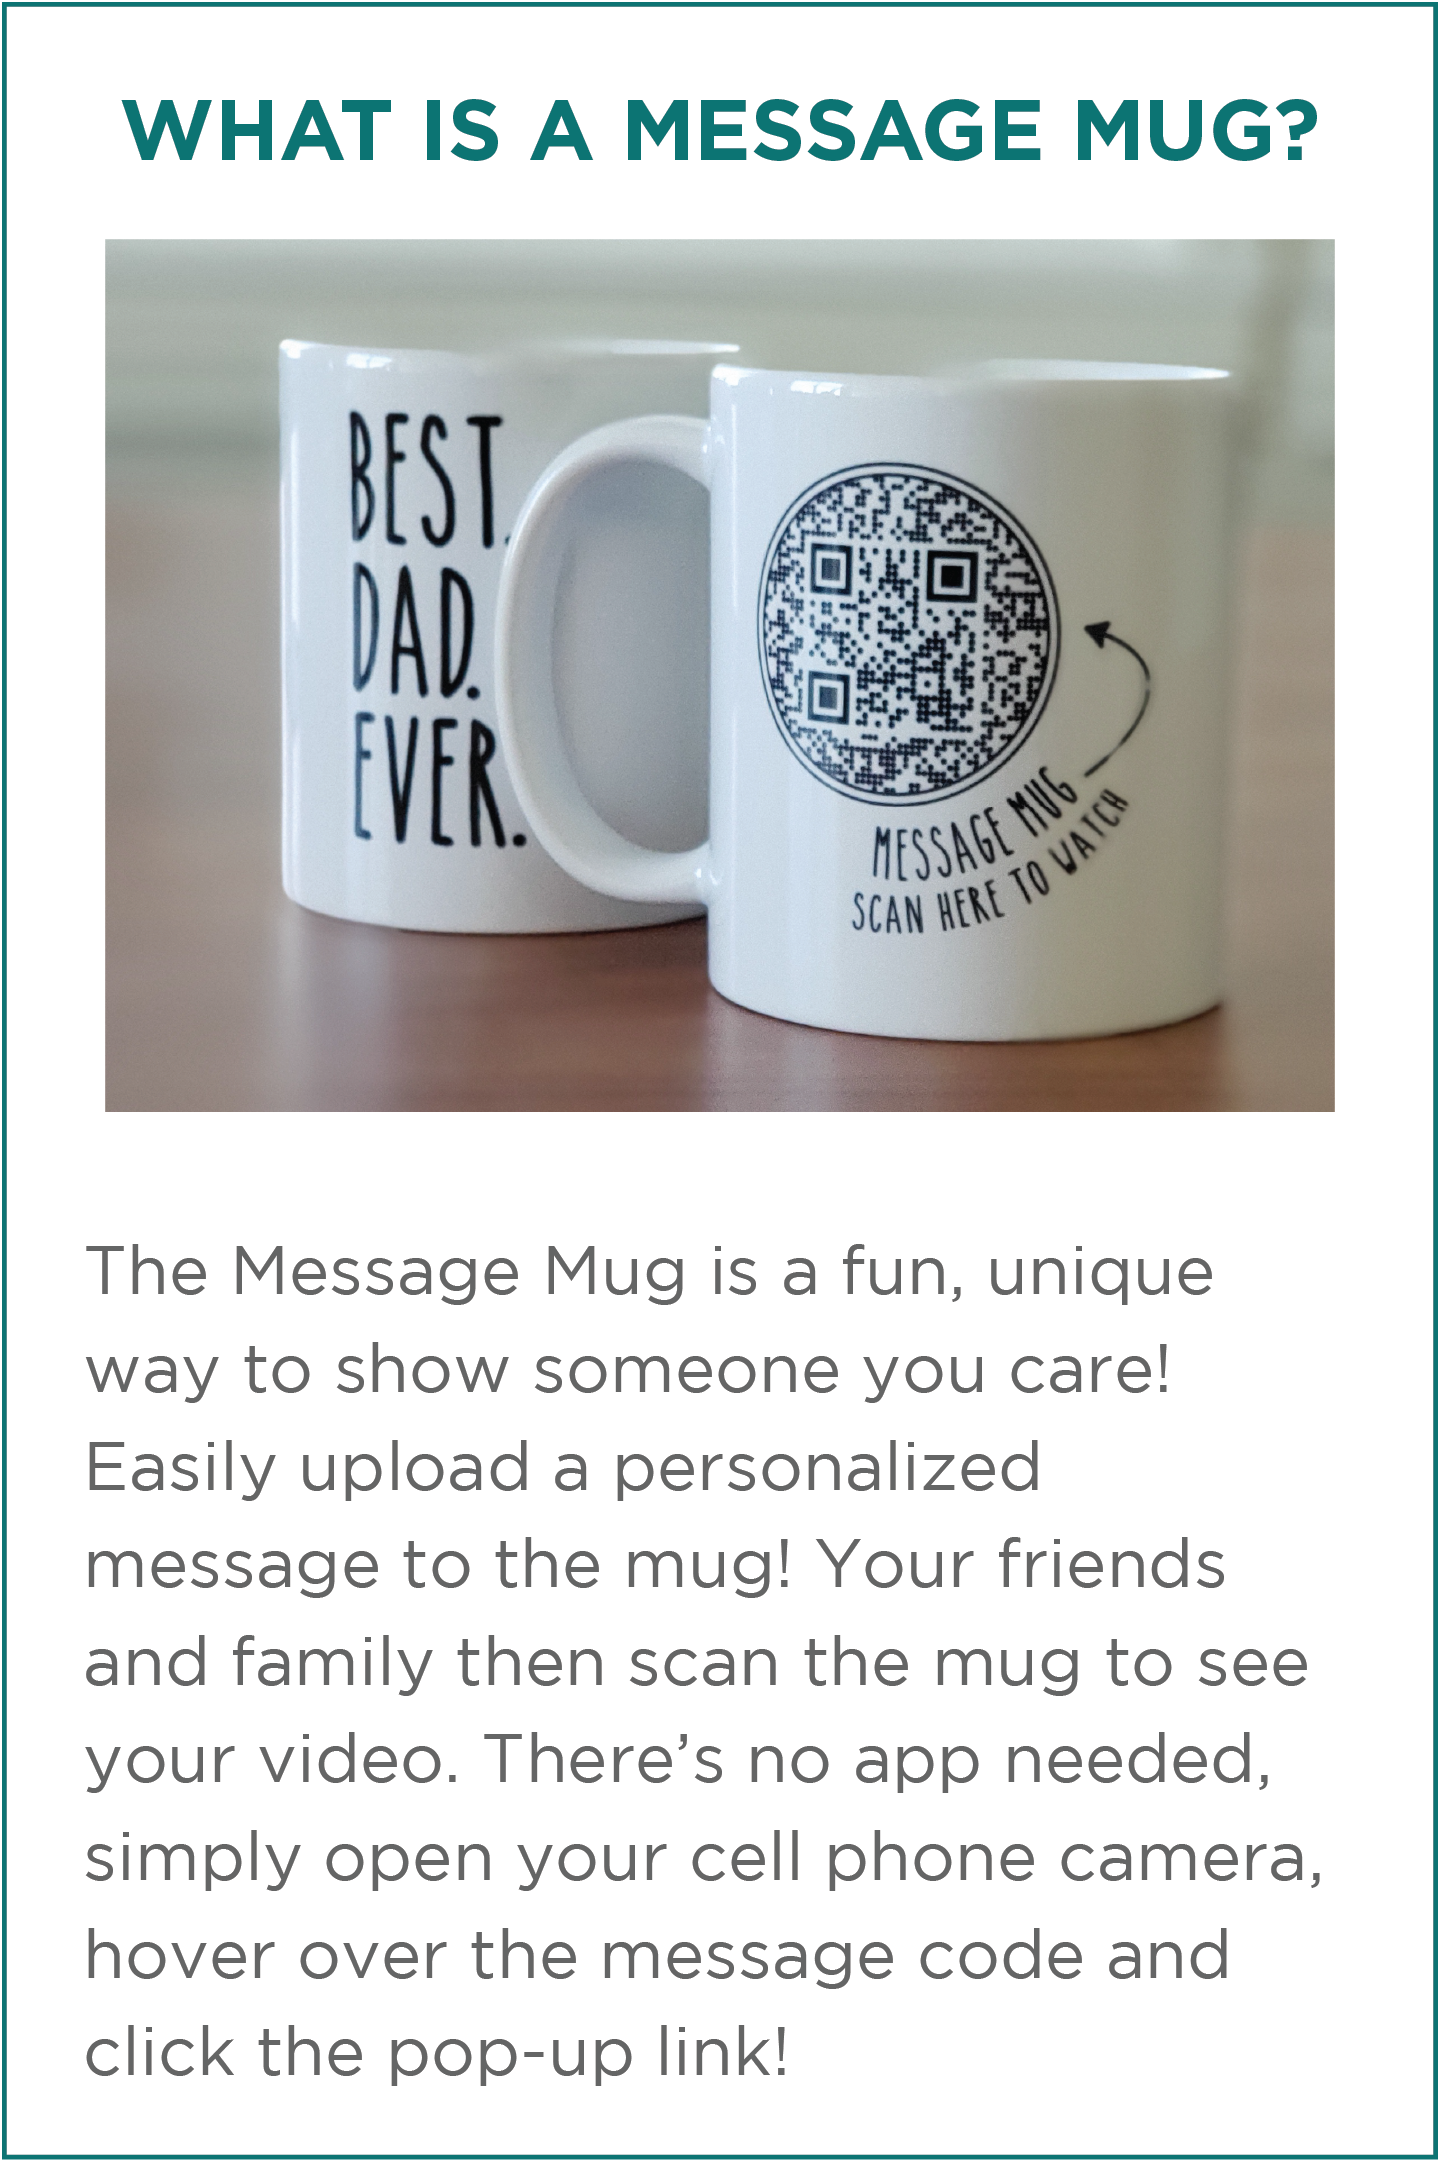 What is a Message mug? The Message Mug is a fun, unique way to show someone you care! Easily upload a personalized message to the mug! Your friends and family then scan the mug to see your video. There's no app needed, simply open your cell phone camera, hover over the message code and click the pop-up link!